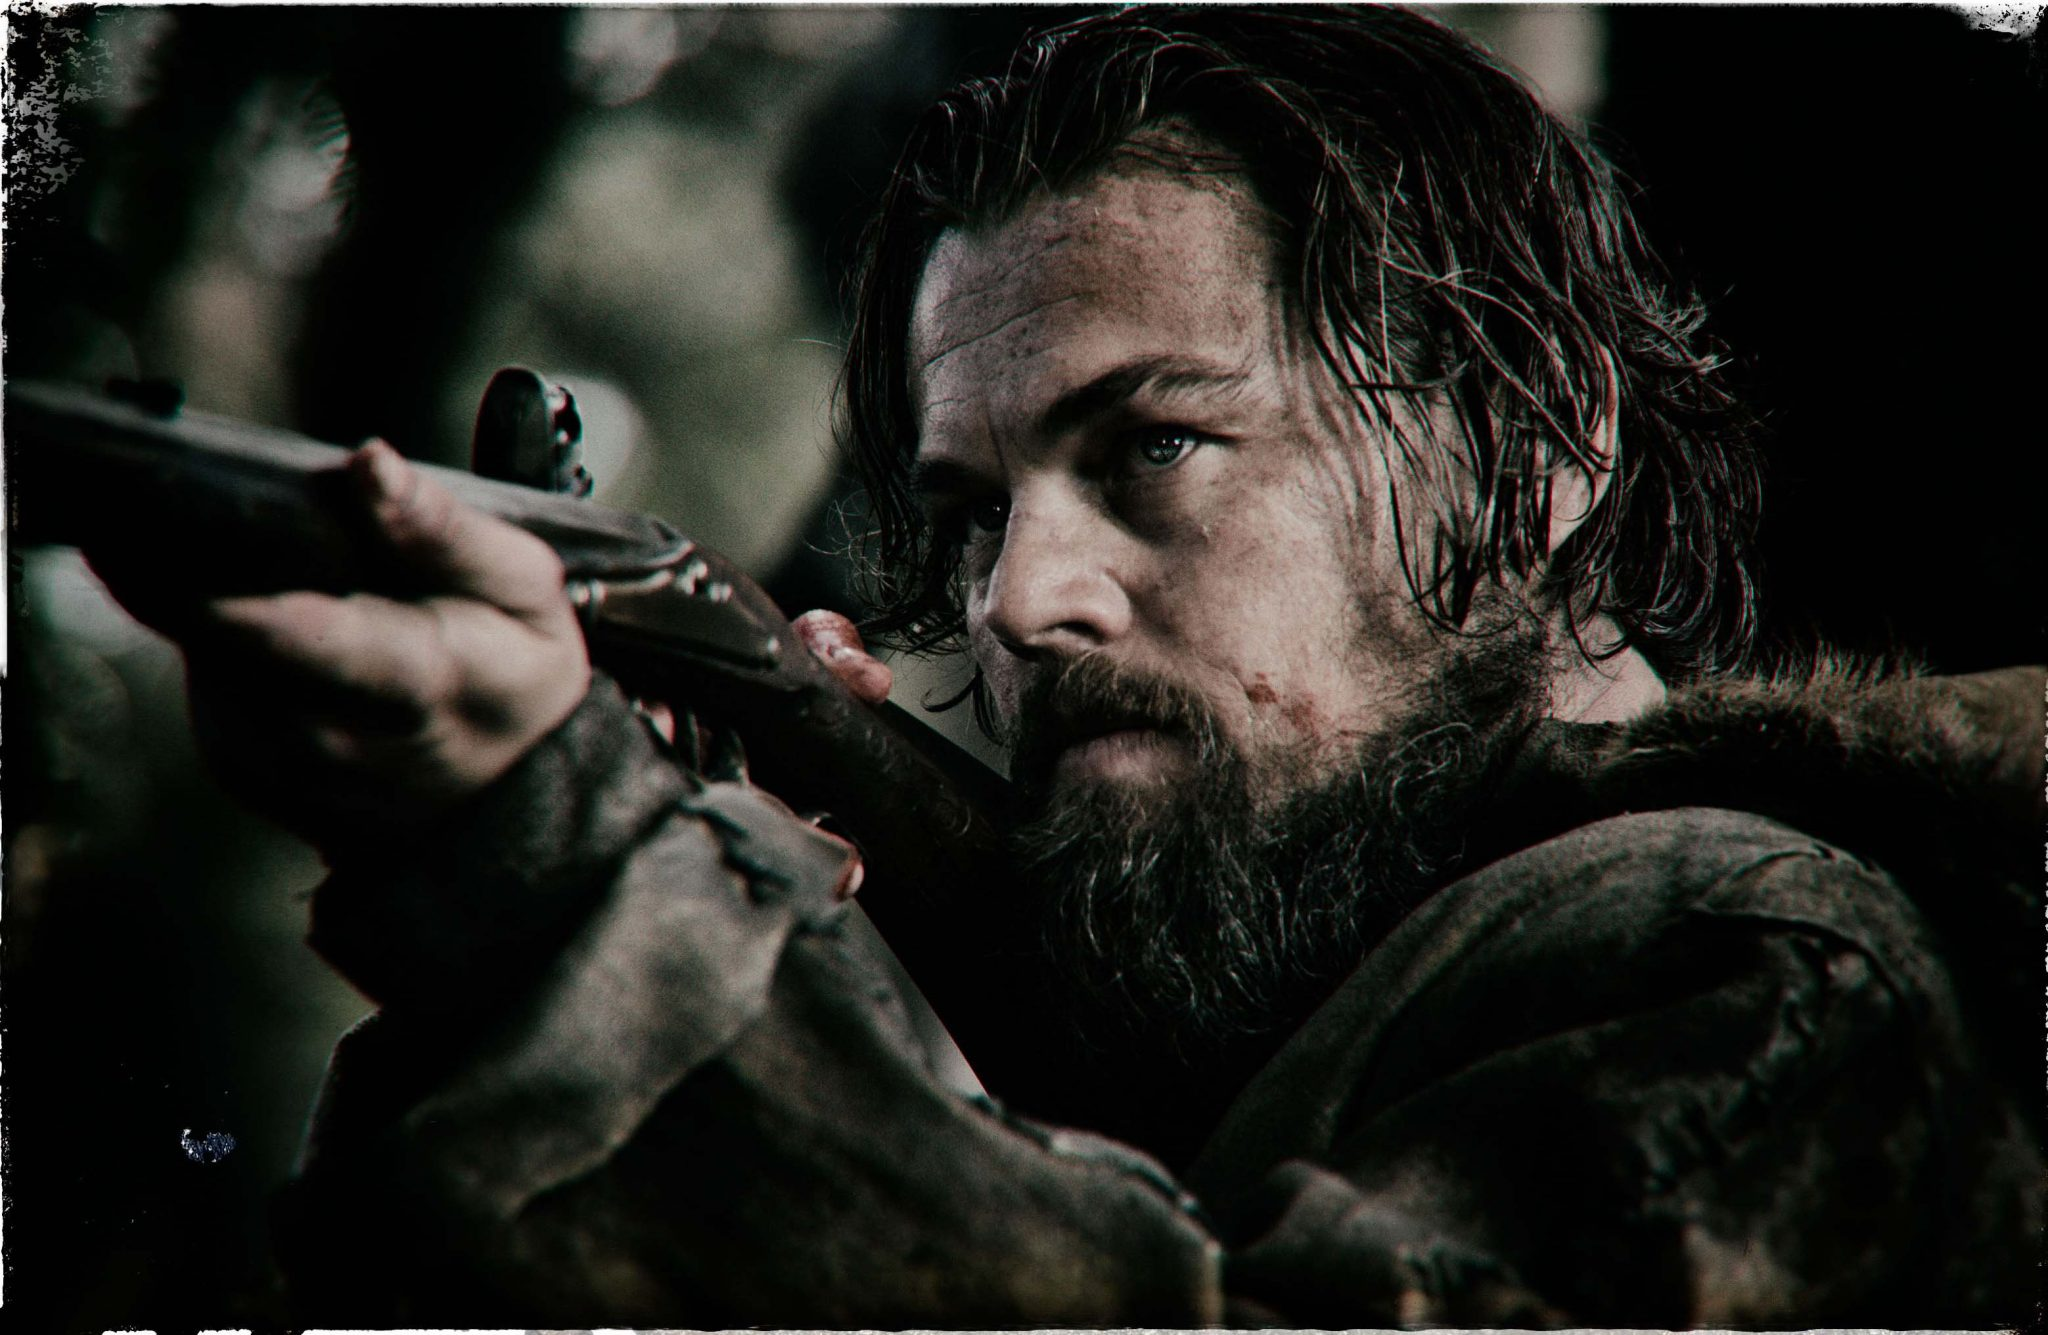 Going head-to-head with Star Wars? DiCaprio - star of The Revenant - doesn't really mind